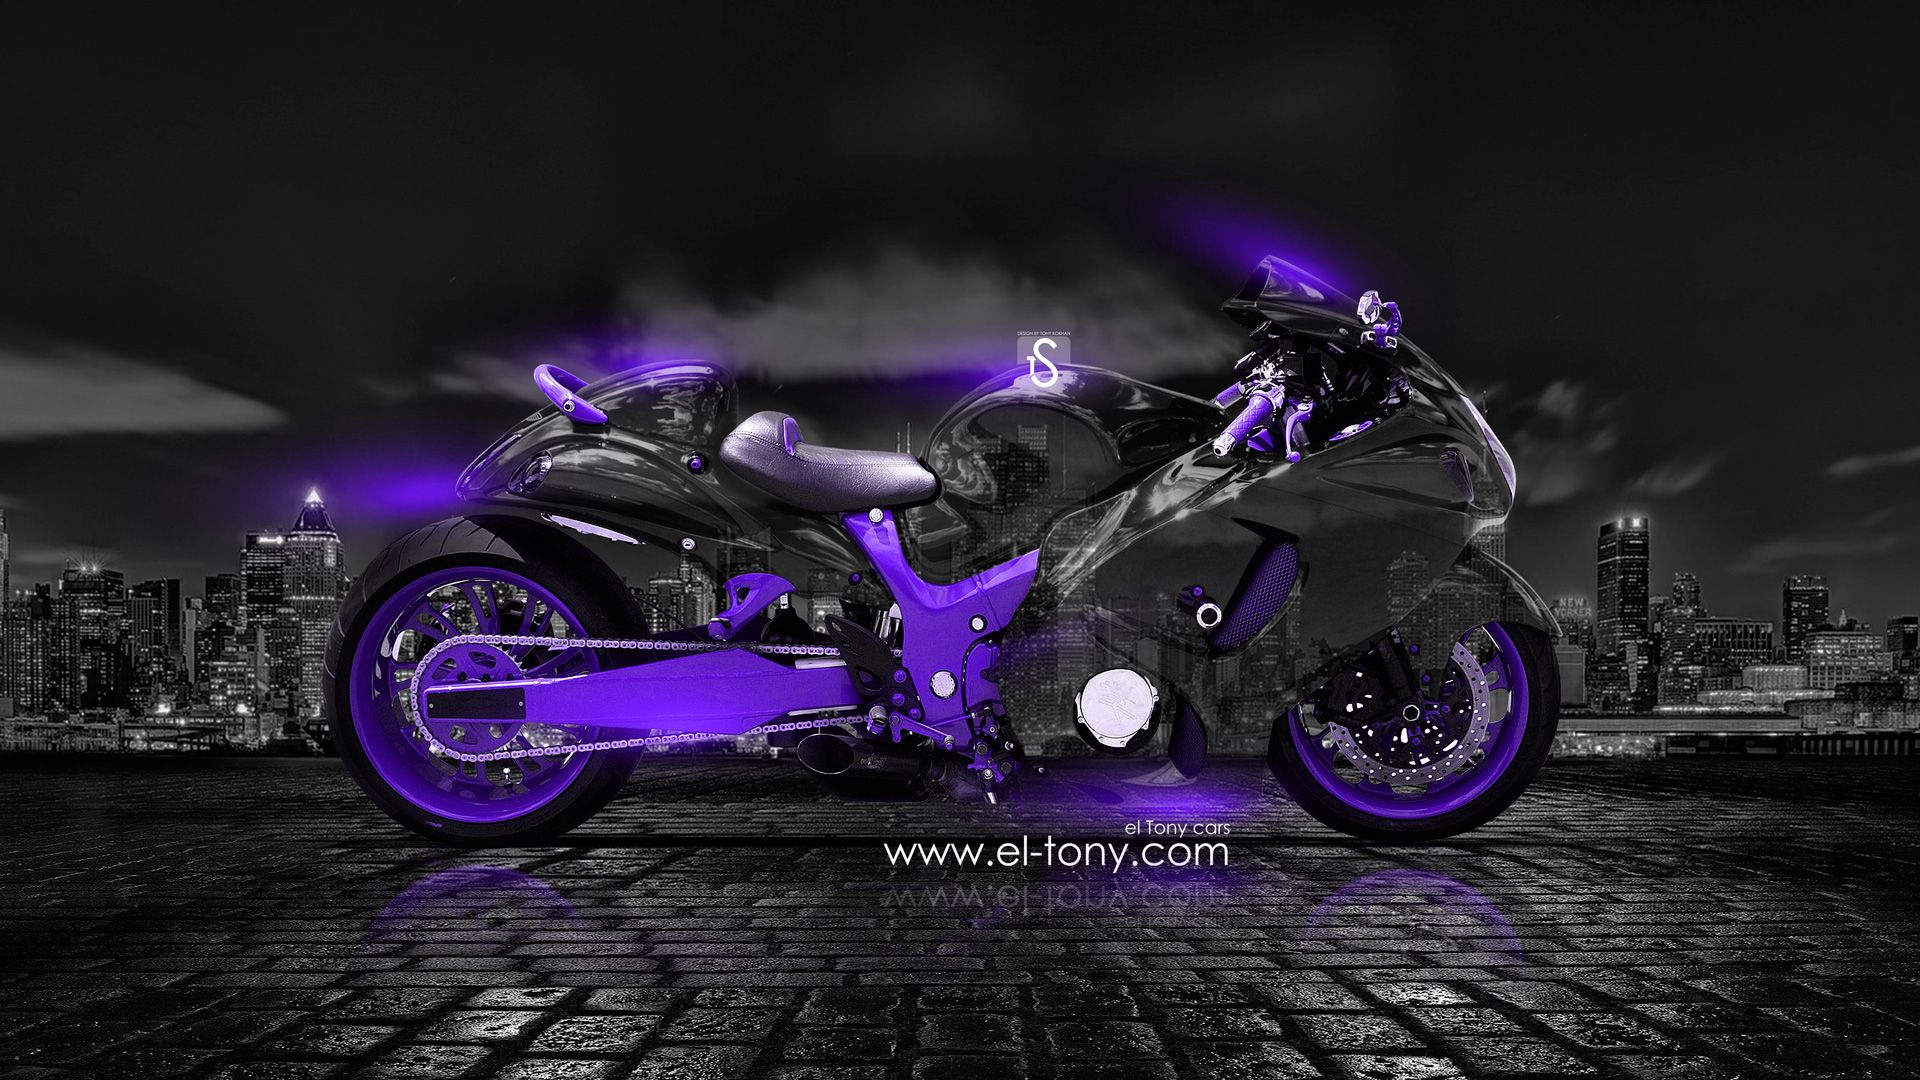 Charmant Moto Suzuki Hayabusa Crystal City Car 2014 Violet